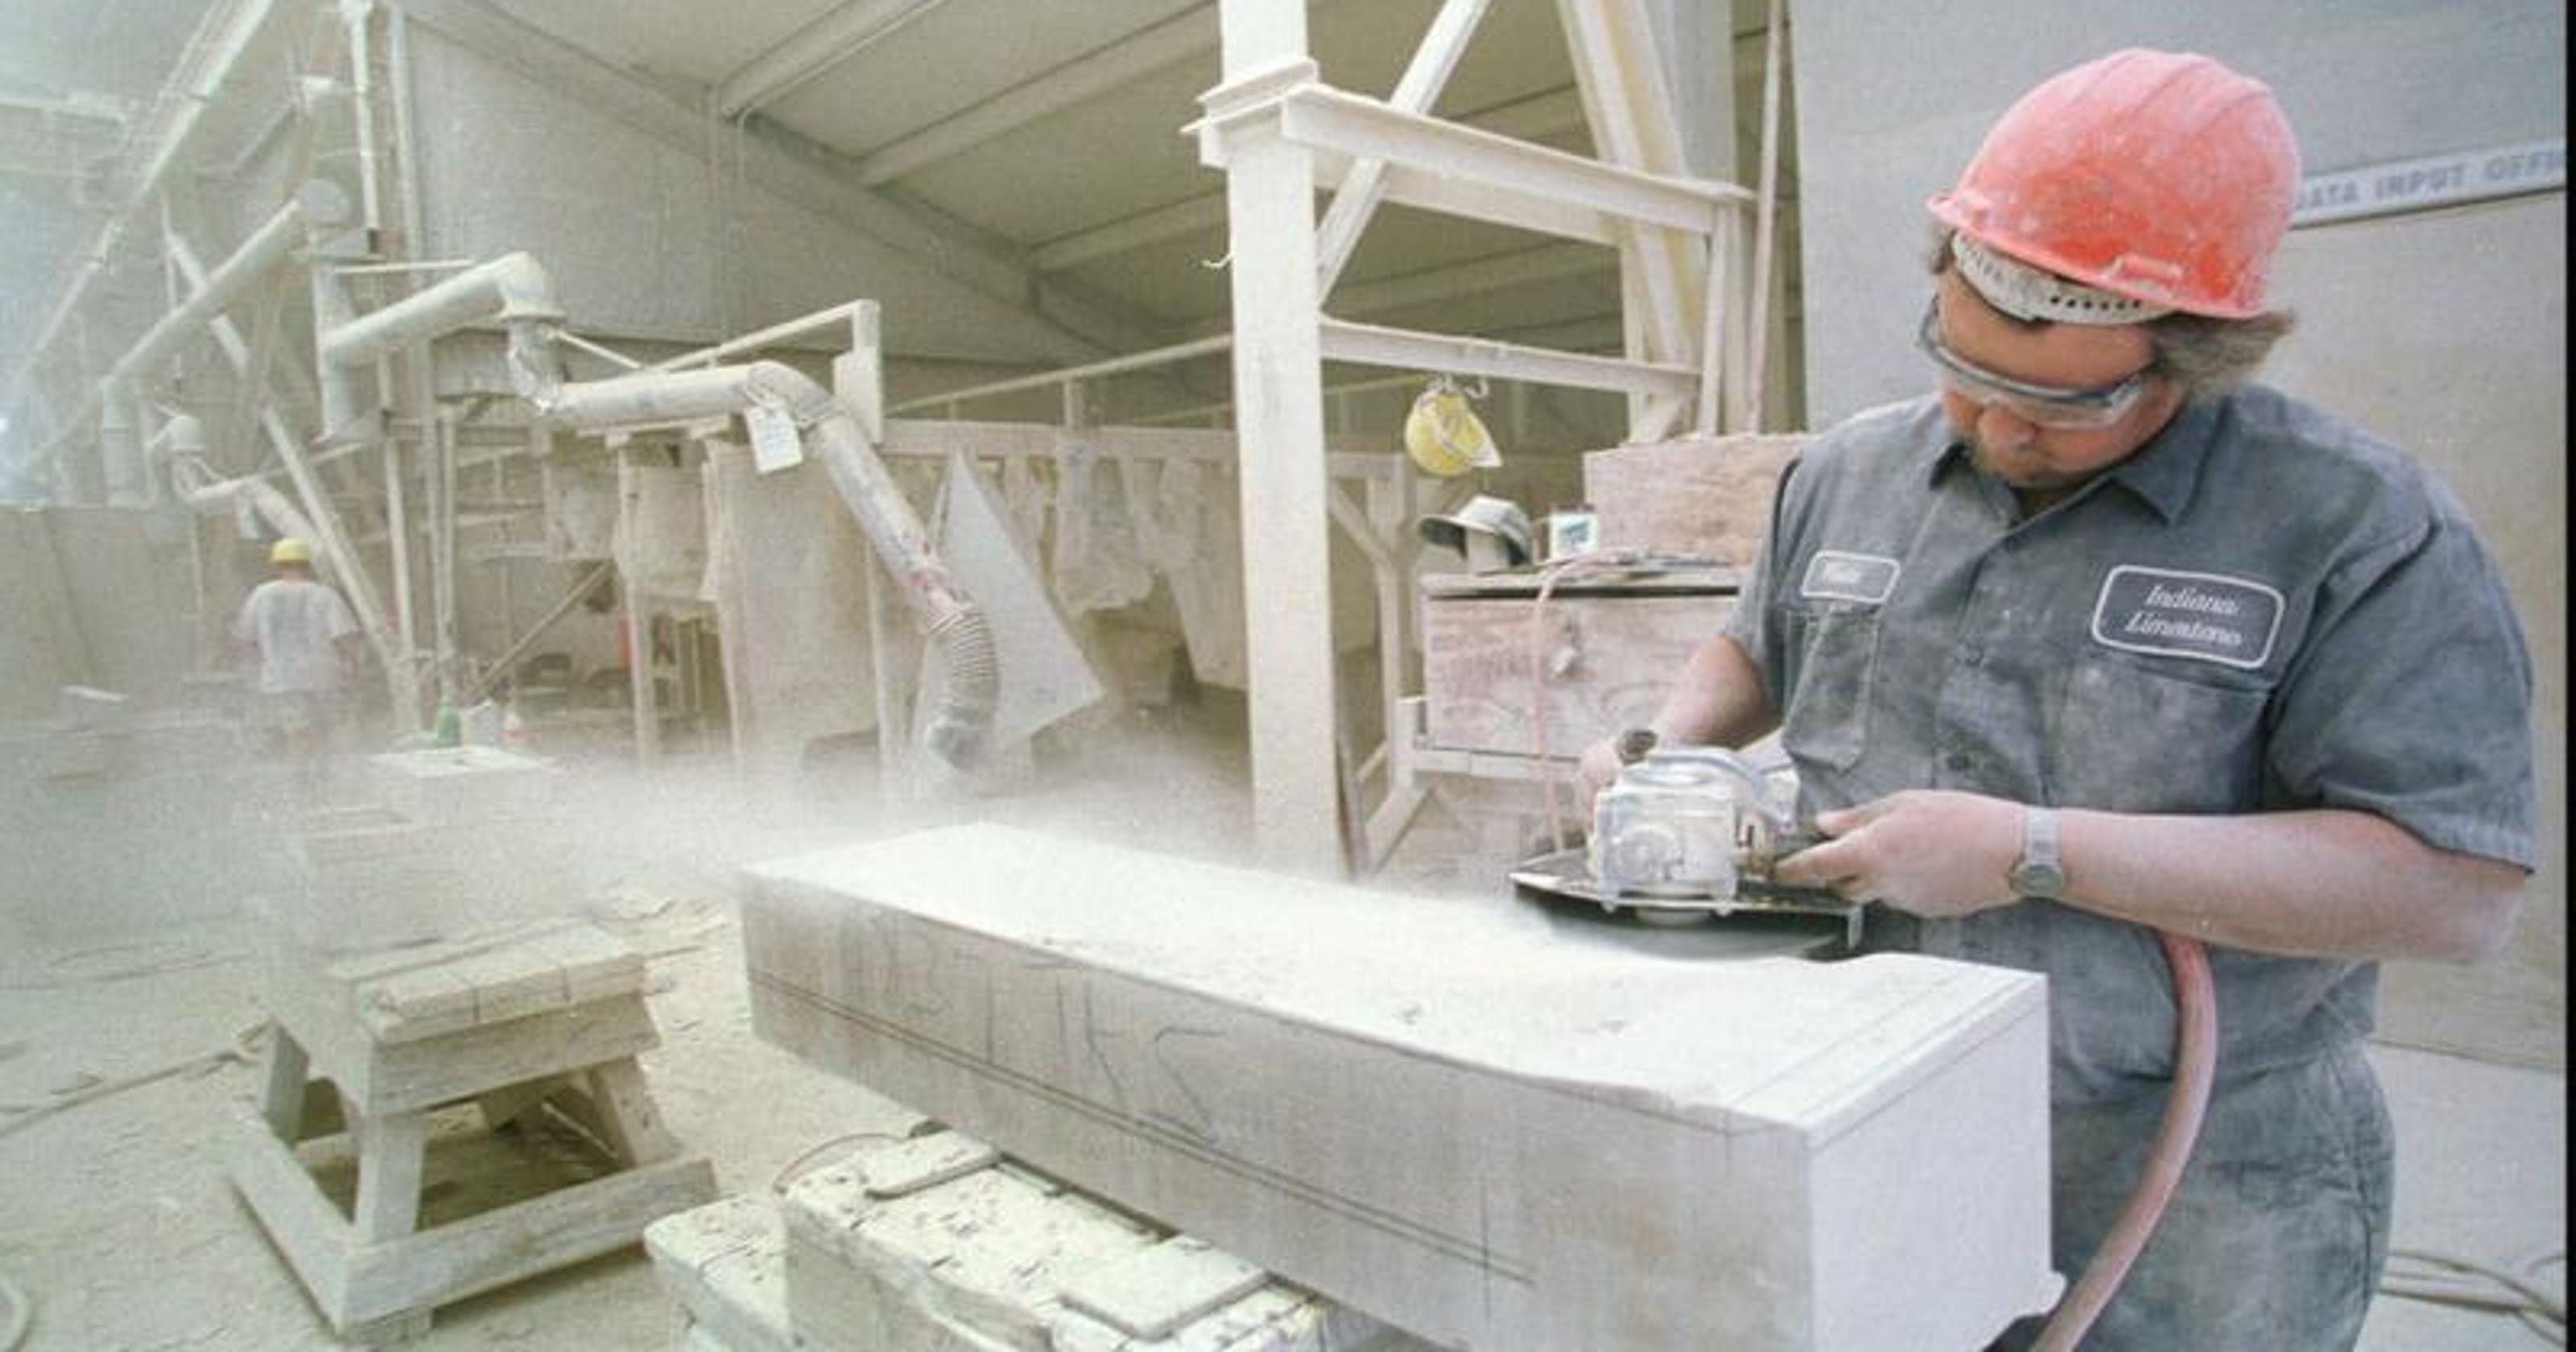 Indiana Limestone Co  to close, lay off 166 workers